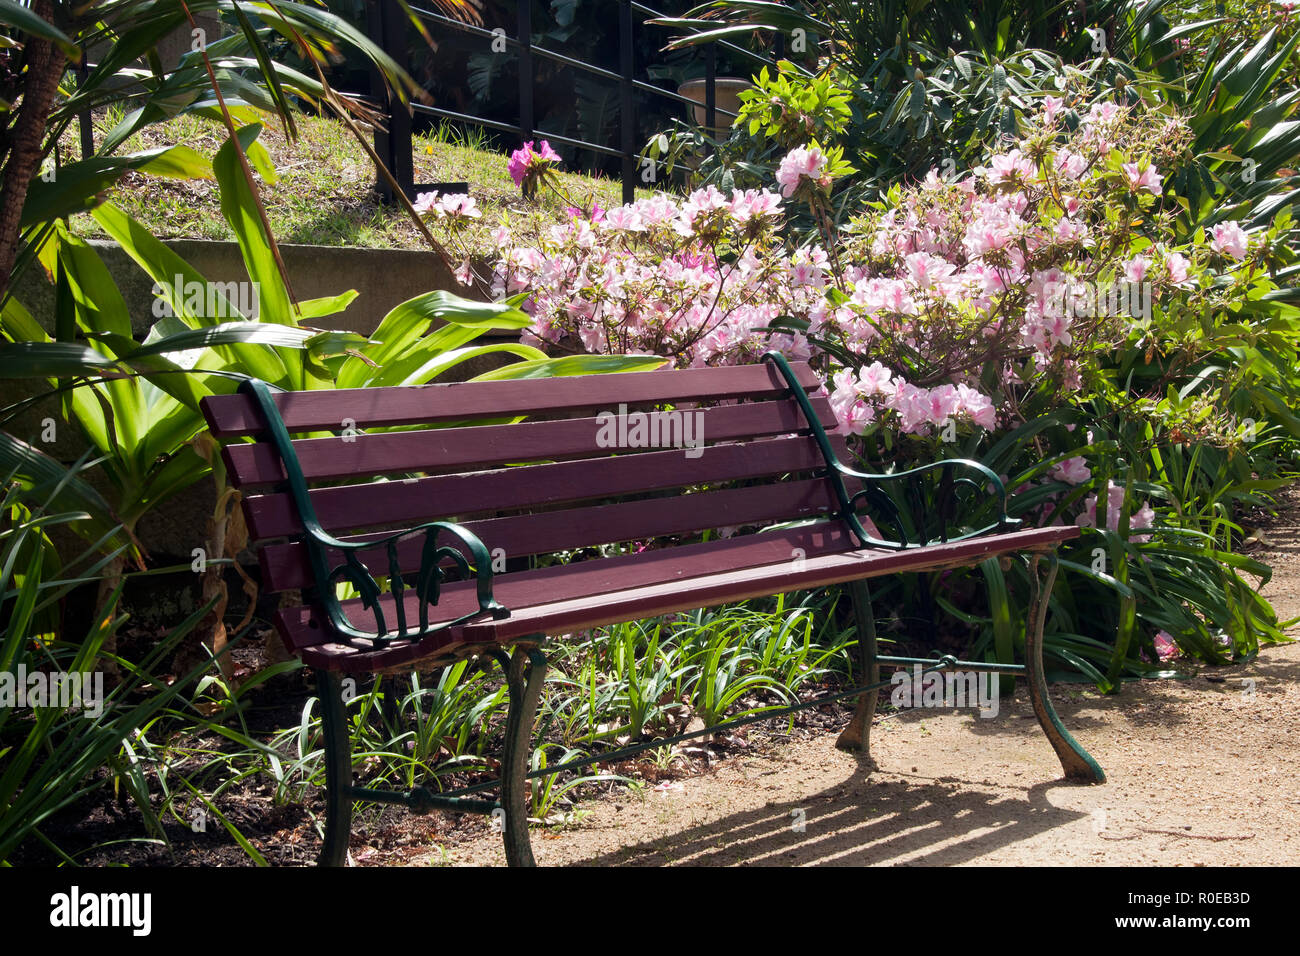 Admirable Sydney Australia Wooden Seat In Garden With Flowering Ibusinesslaw Wood Chair Design Ideas Ibusinesslaworg